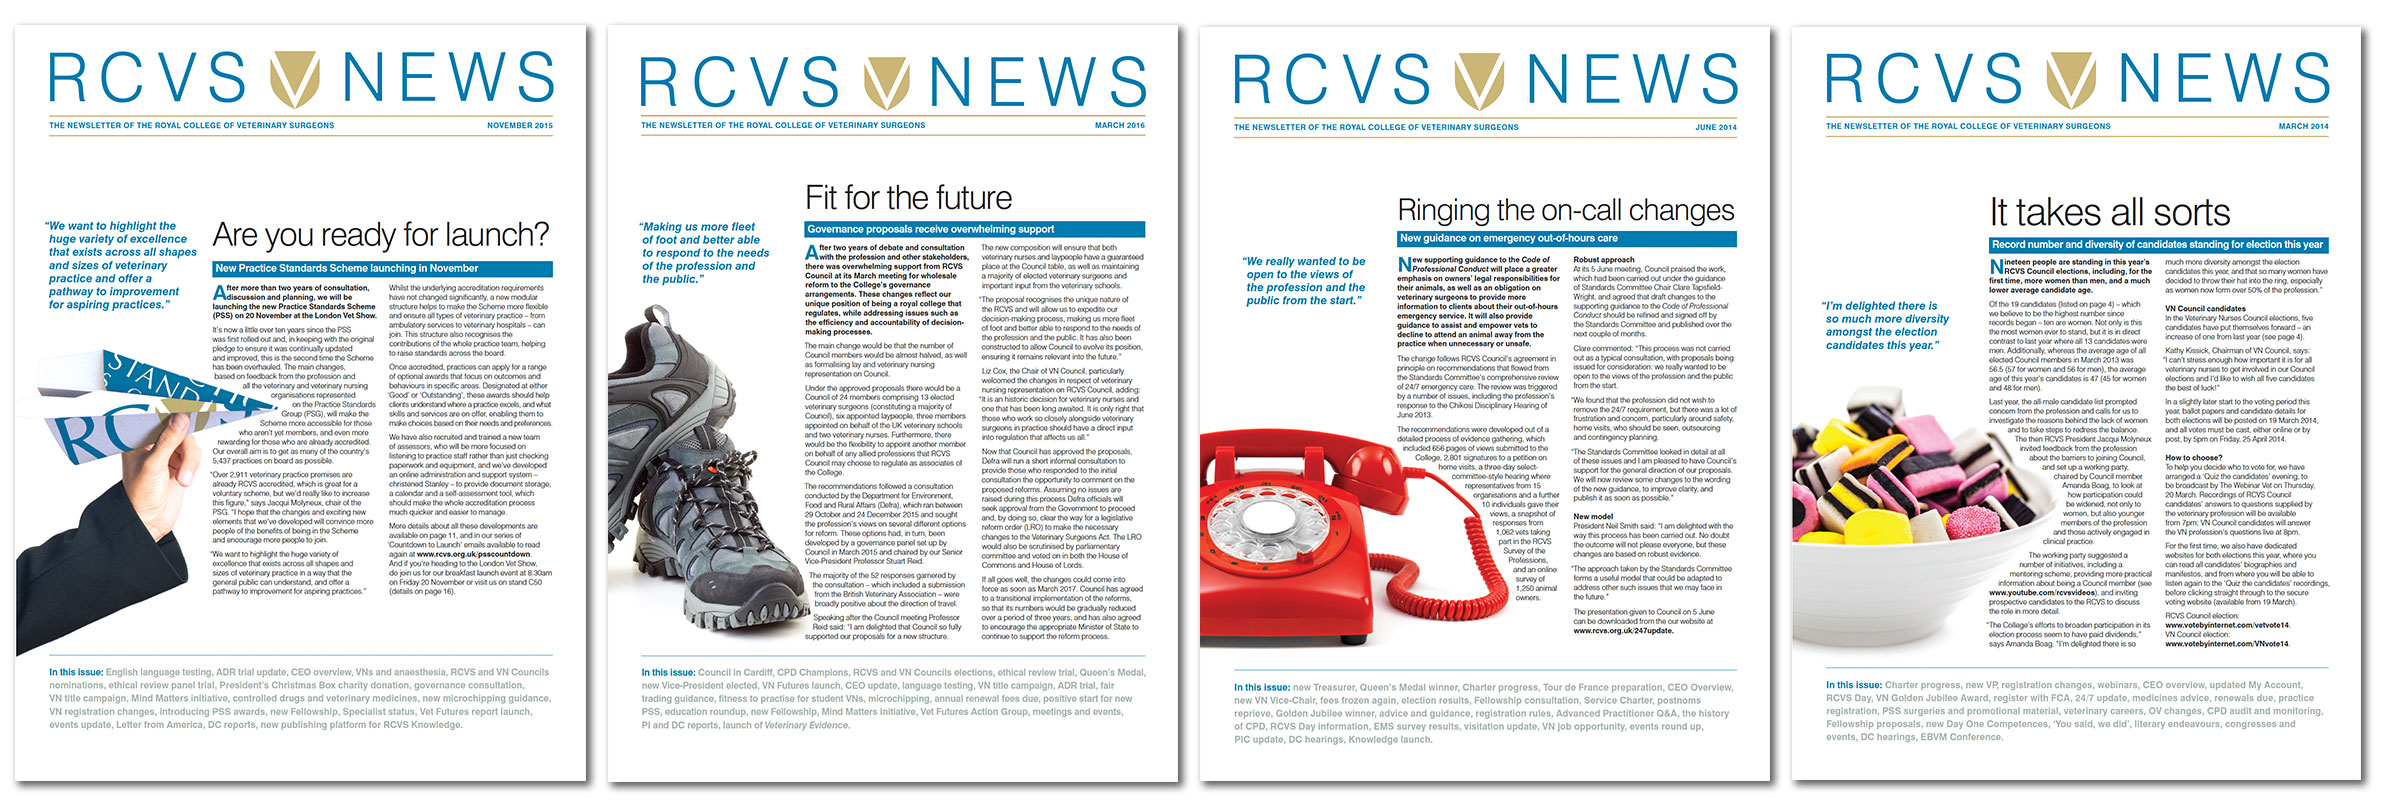 RCVS-covers